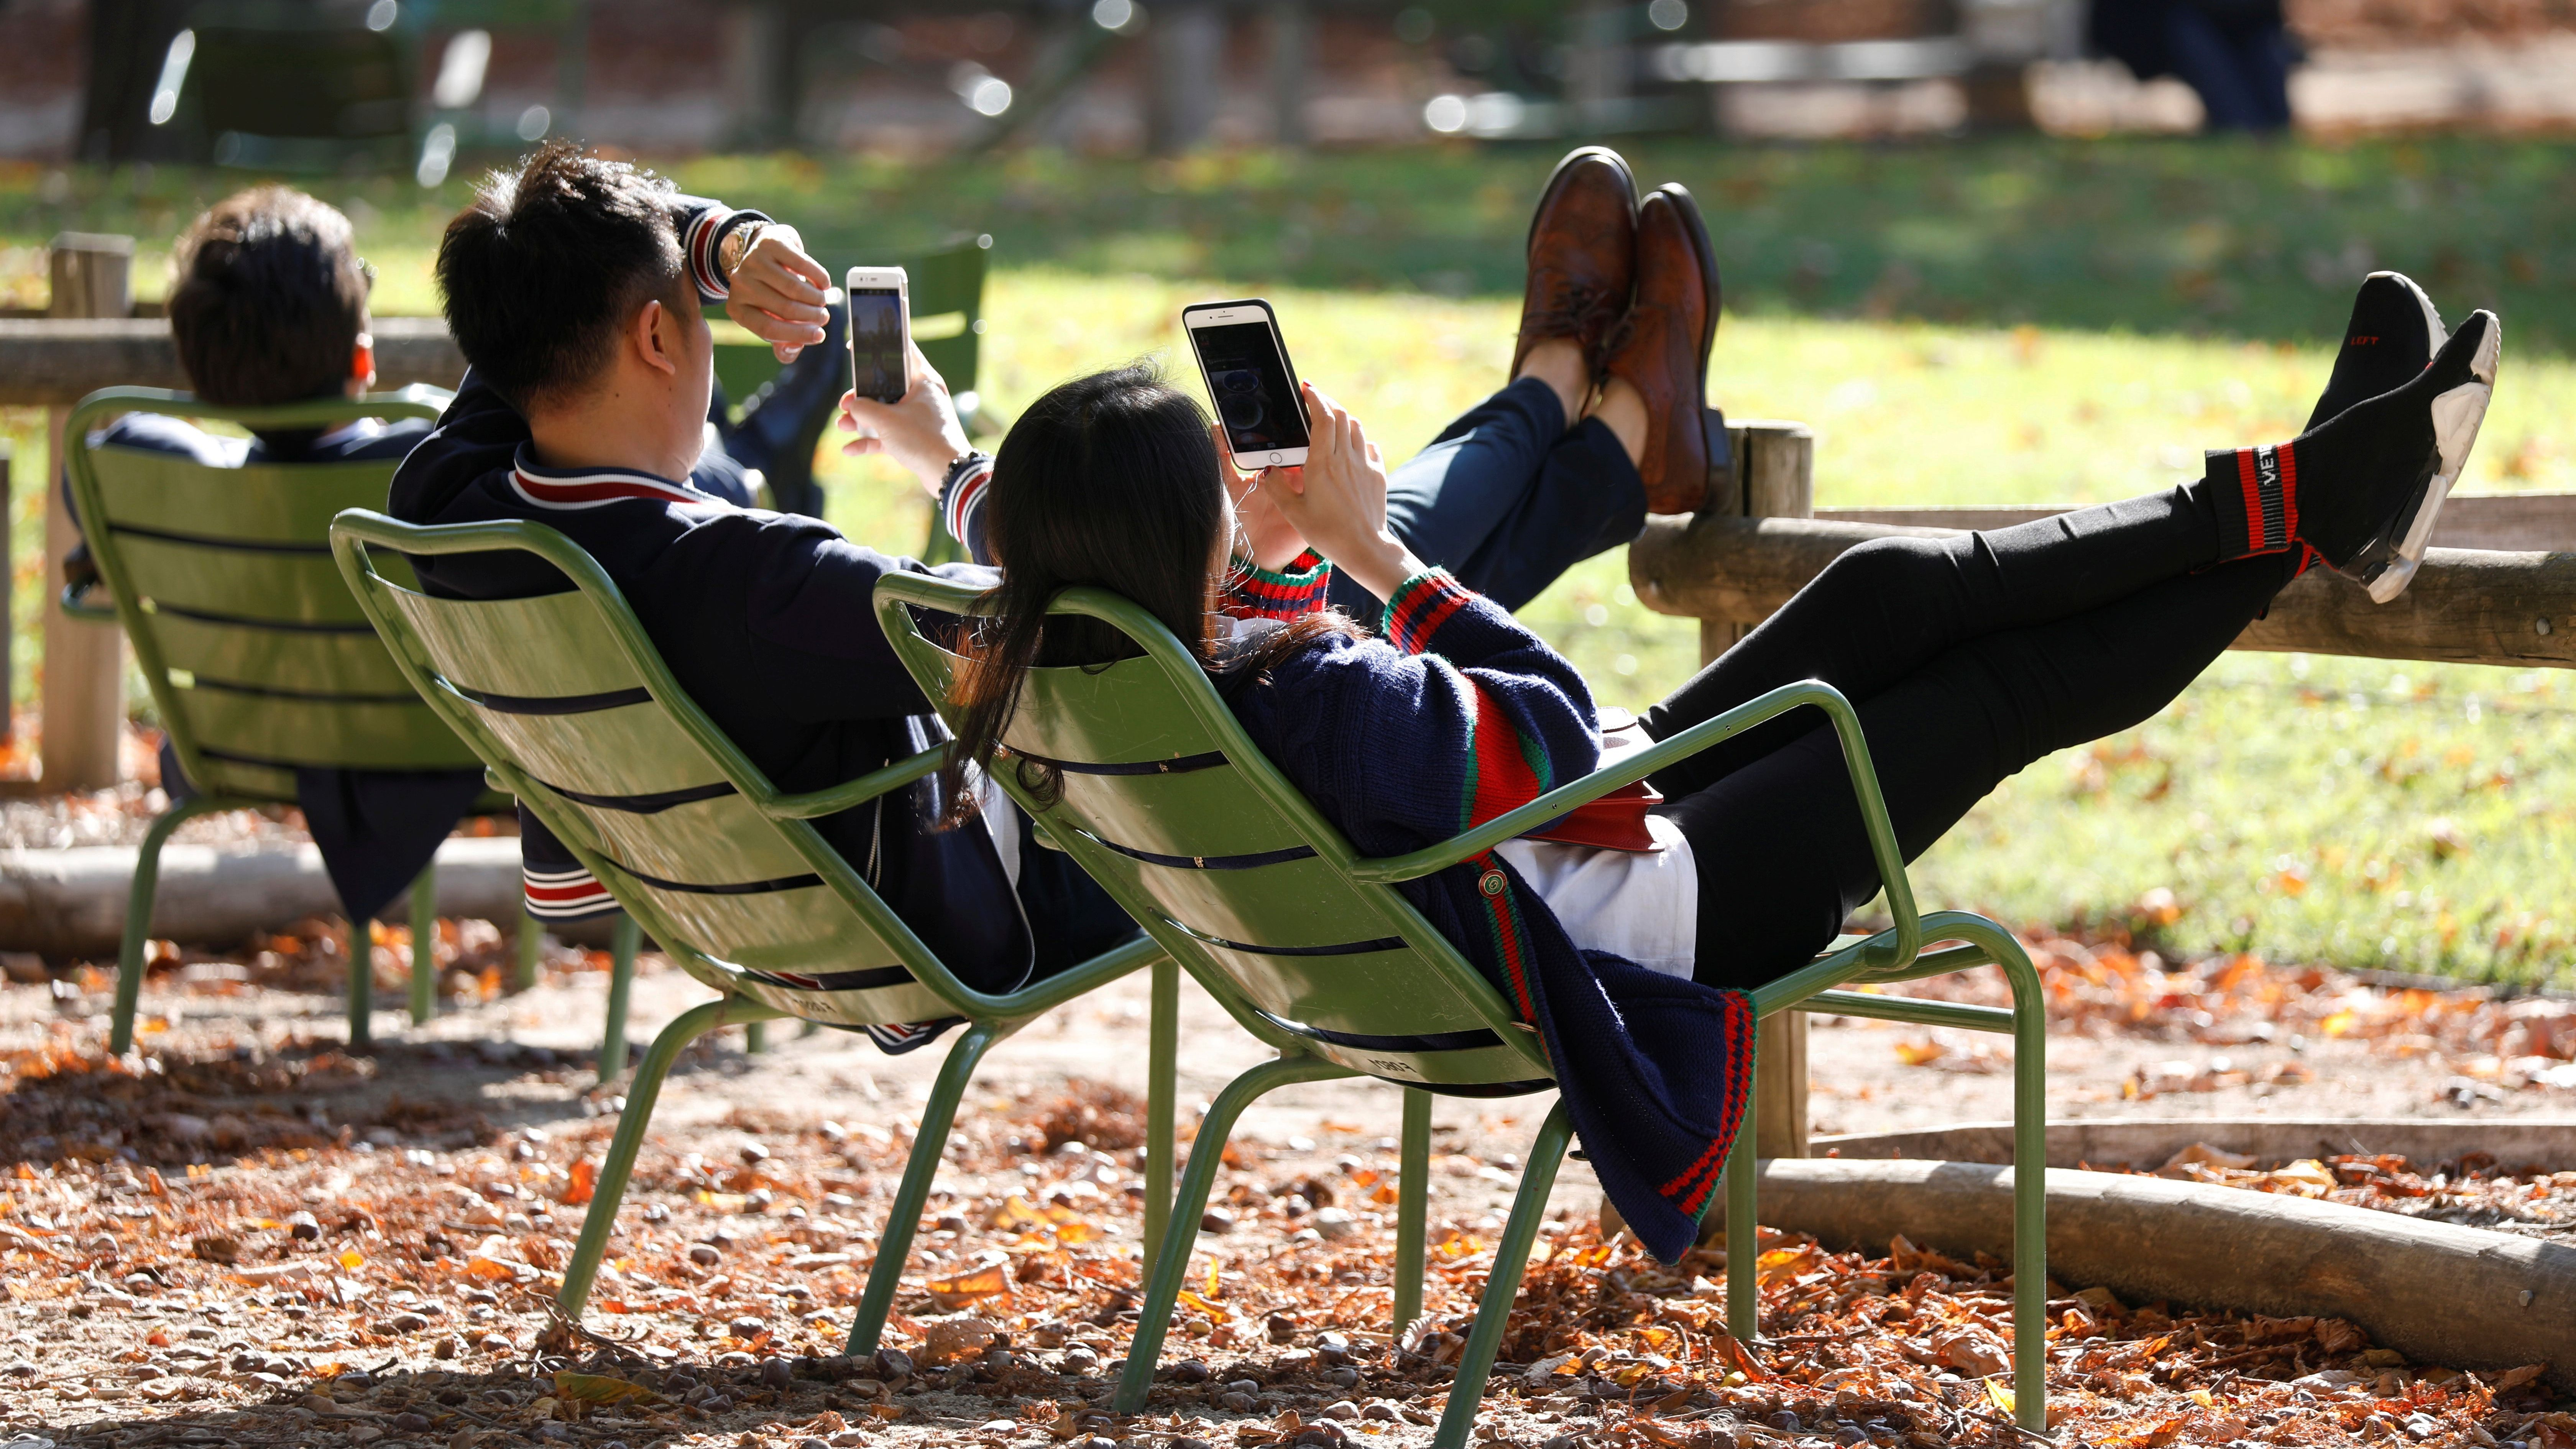 People look at the screen of their cell phones in the Jardin des Tuileries on an autumn day in Paris, France, October 8, 2018. REUTERS/Charles Platiau - RC1DCE912960